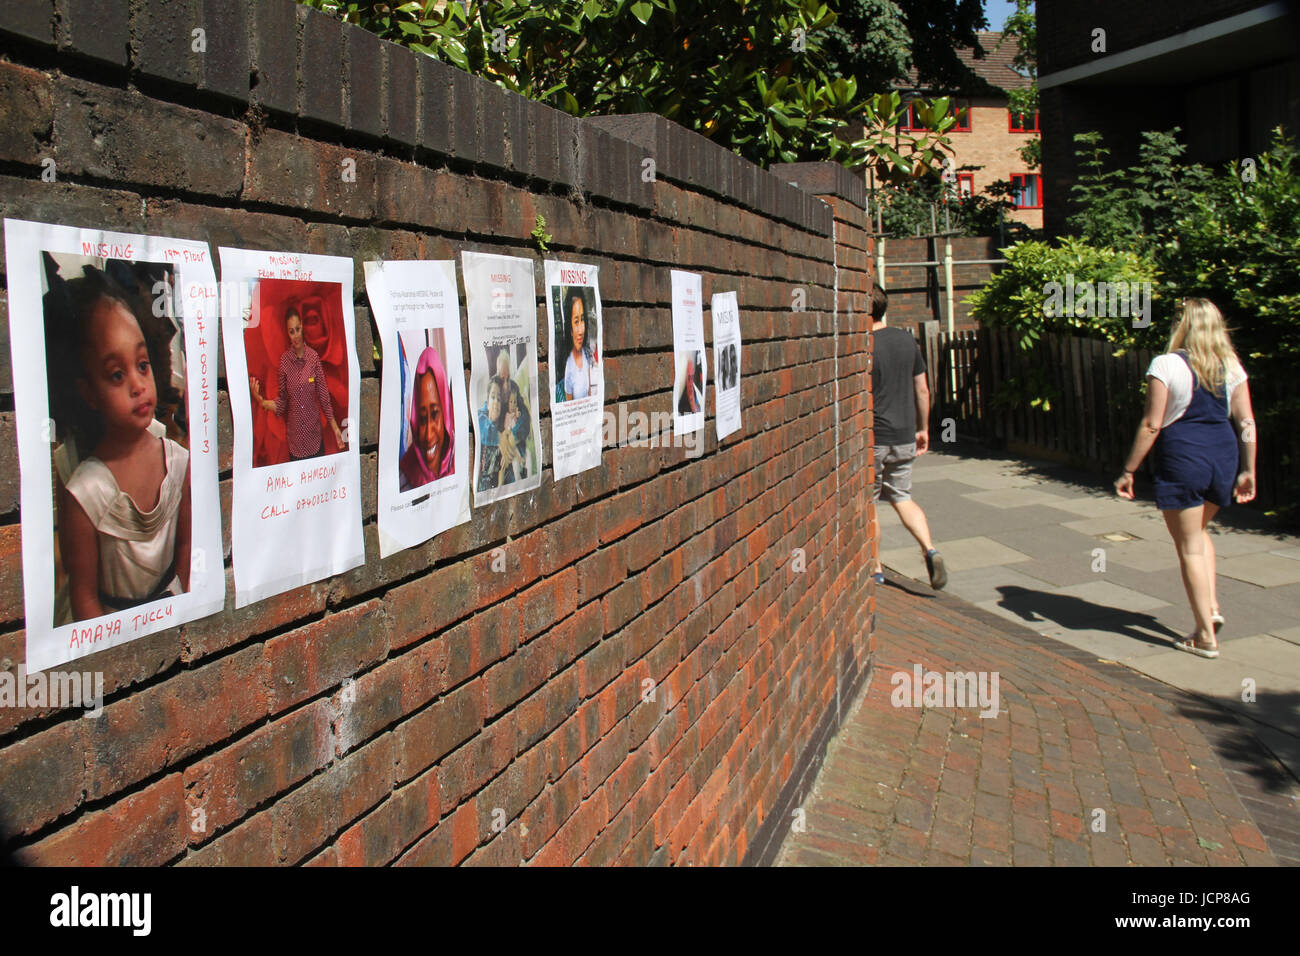 London, UK. 16th June, 2017. People walk past a wall with postered with some of the missing Grenfell Tower residence. - Stock Image